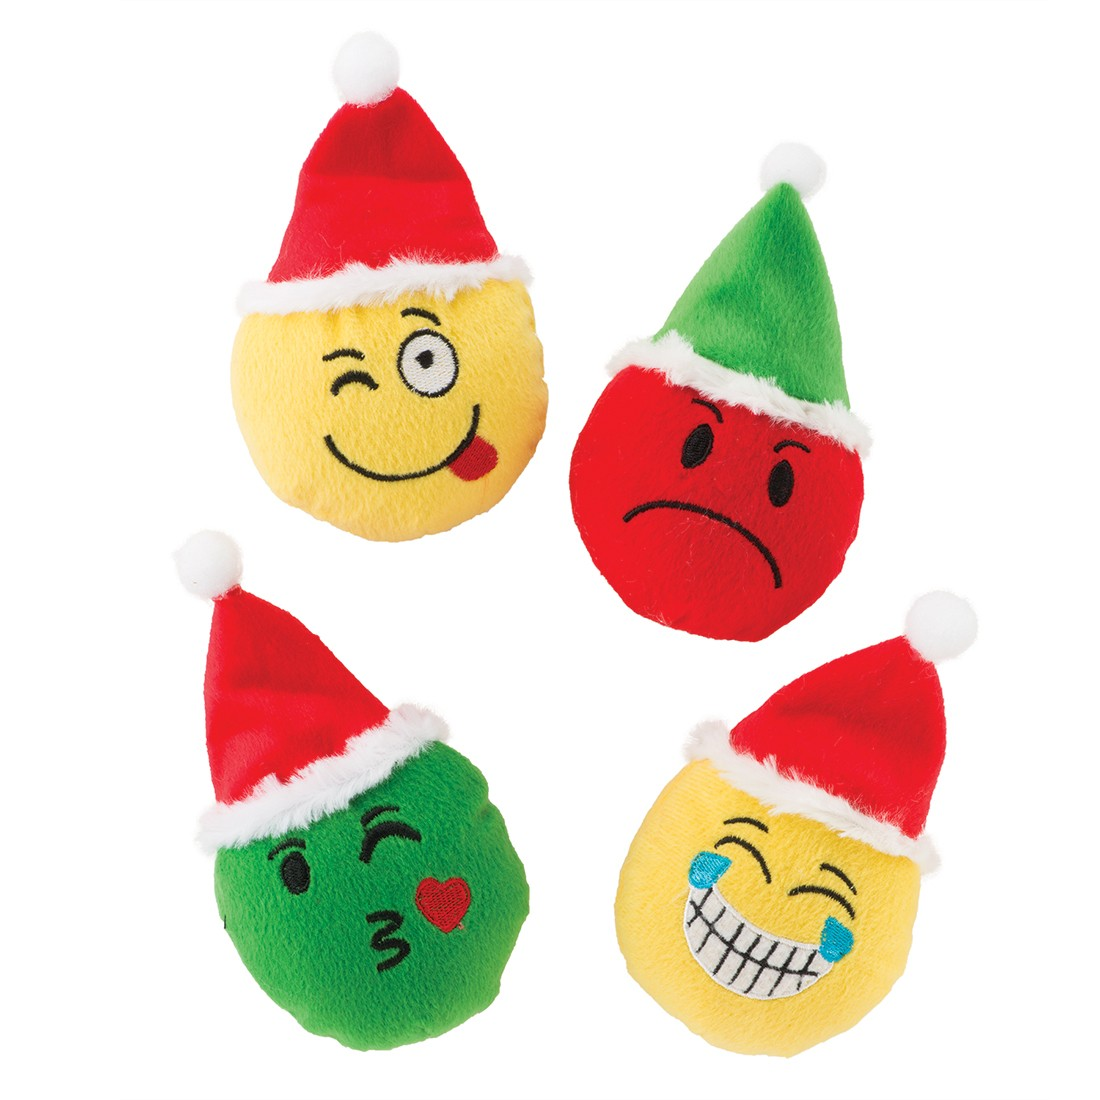 Christmas Emojis.Plush Christmas Emojis Plush Toys From Smilemakers